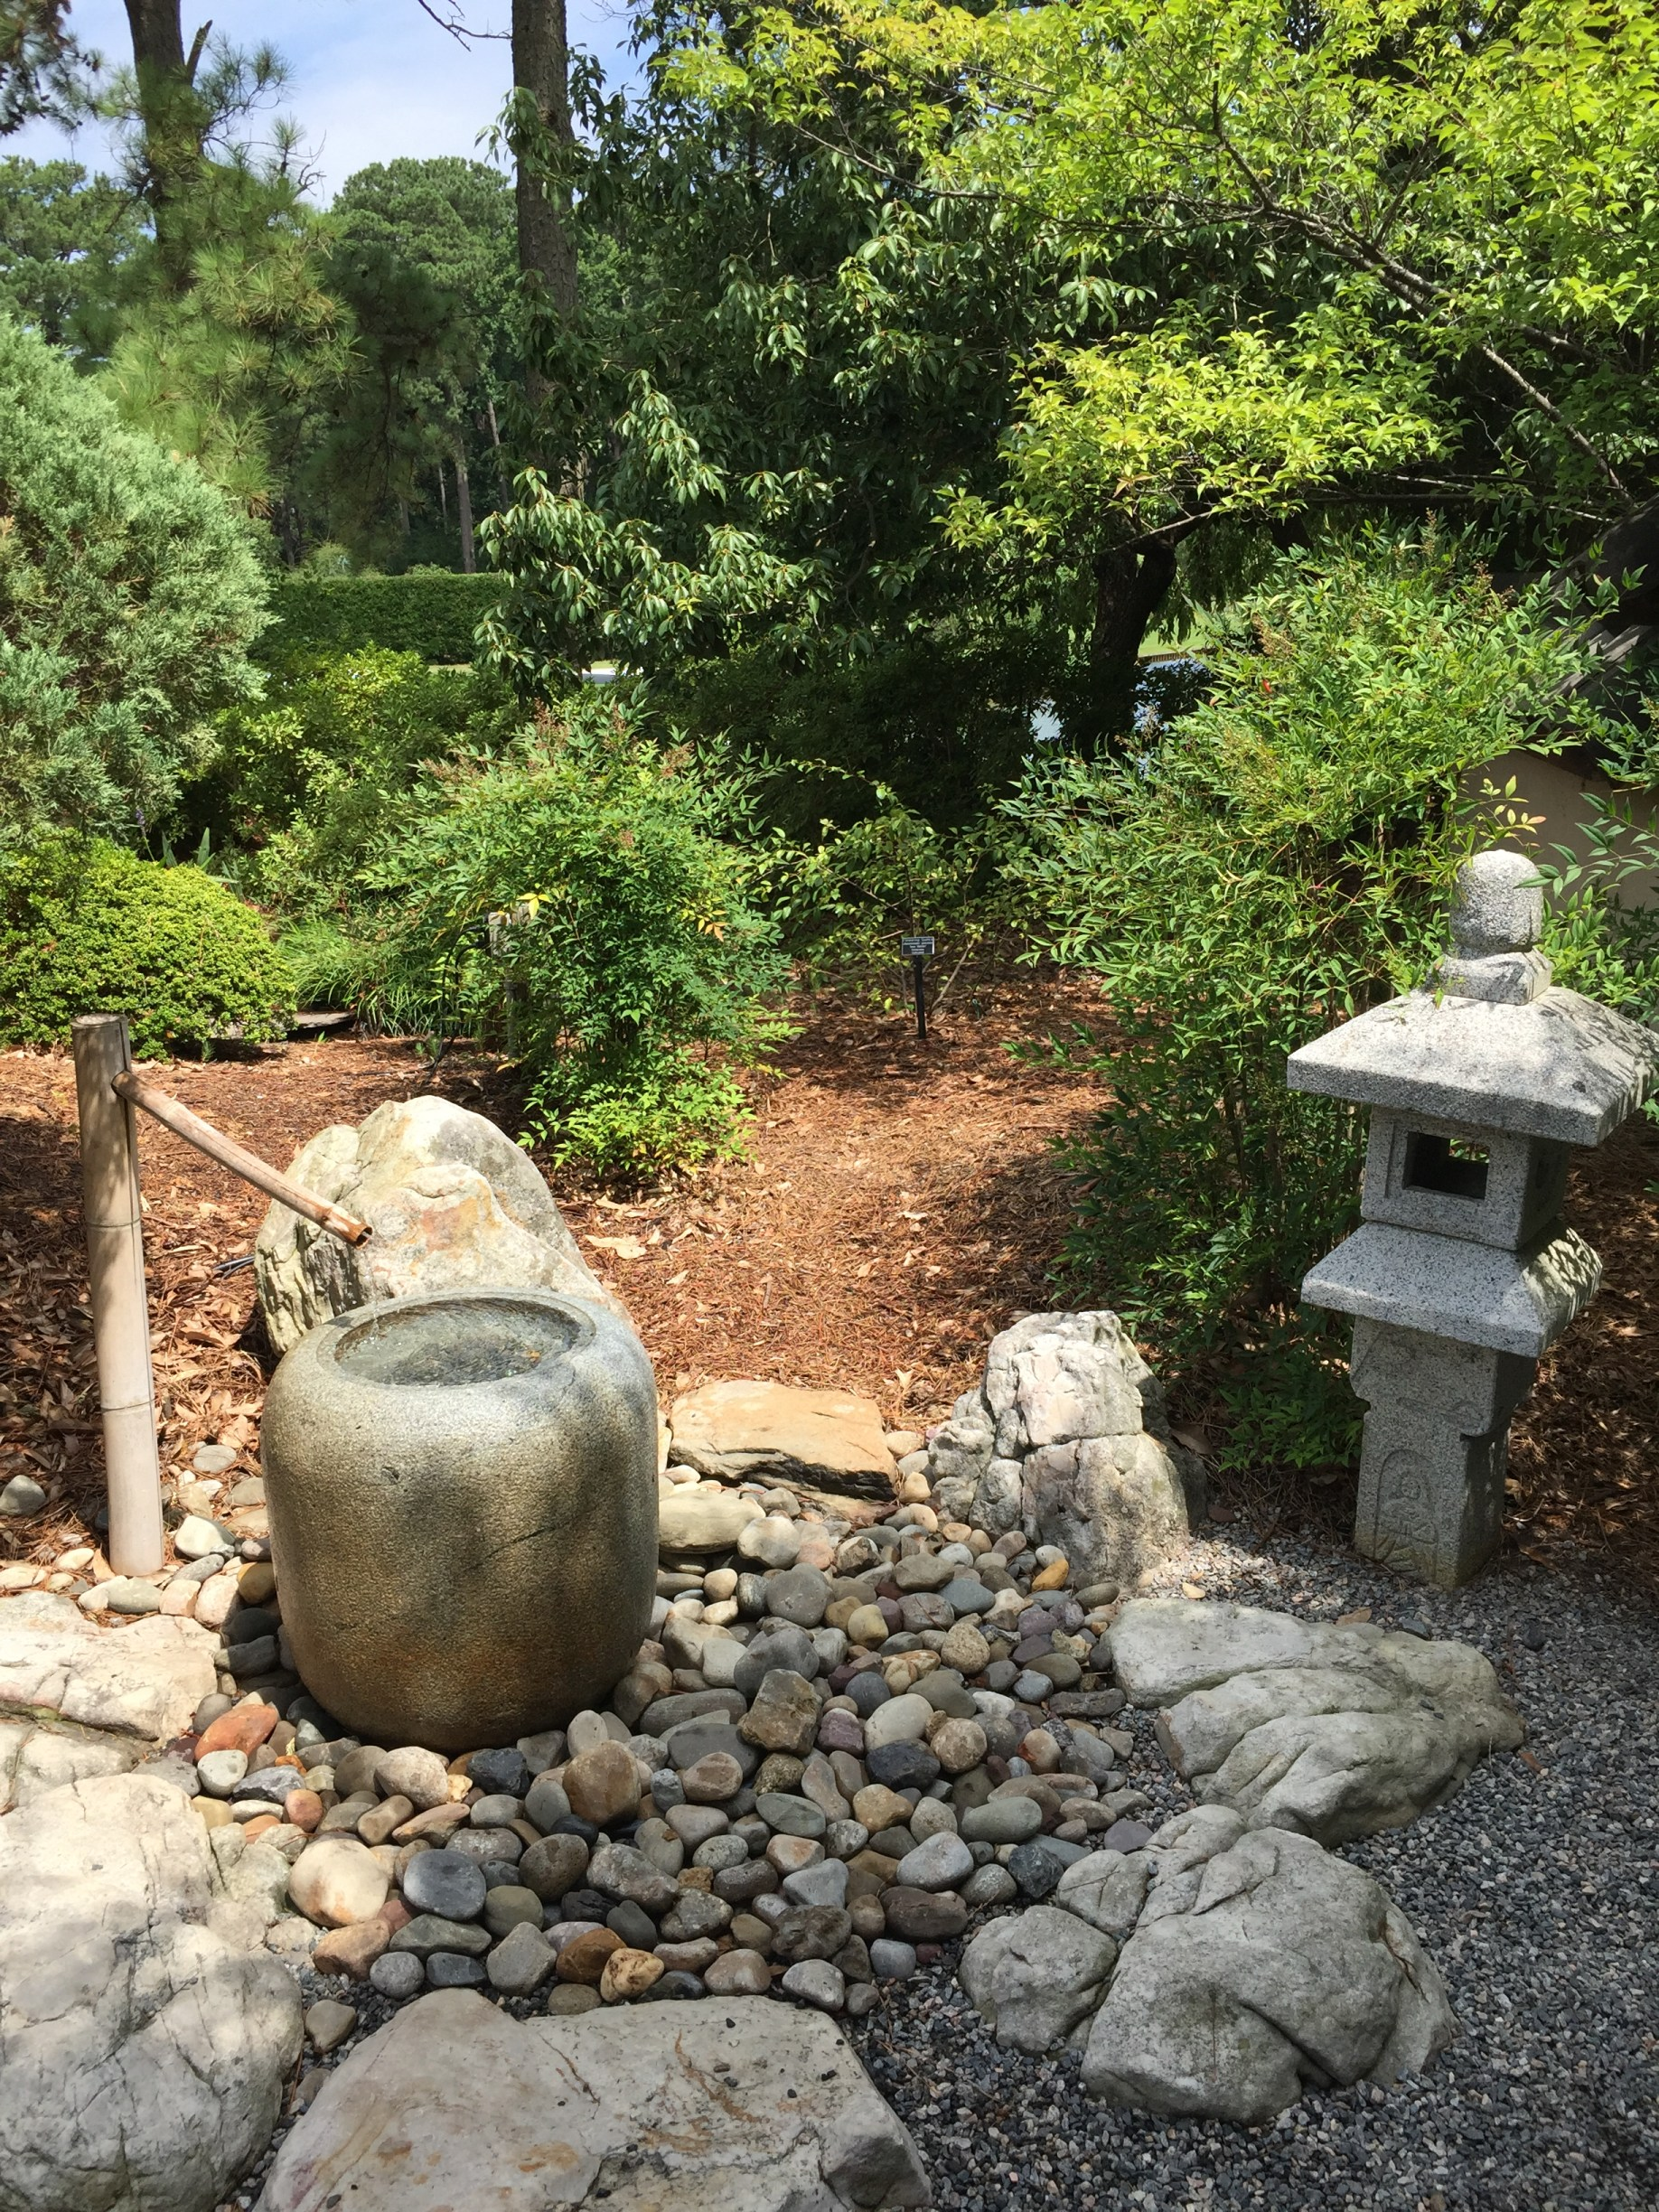 A fountain and lotus pool introduce water elements in the Japanese Garden. Photo © 2018 Elaine Mills.